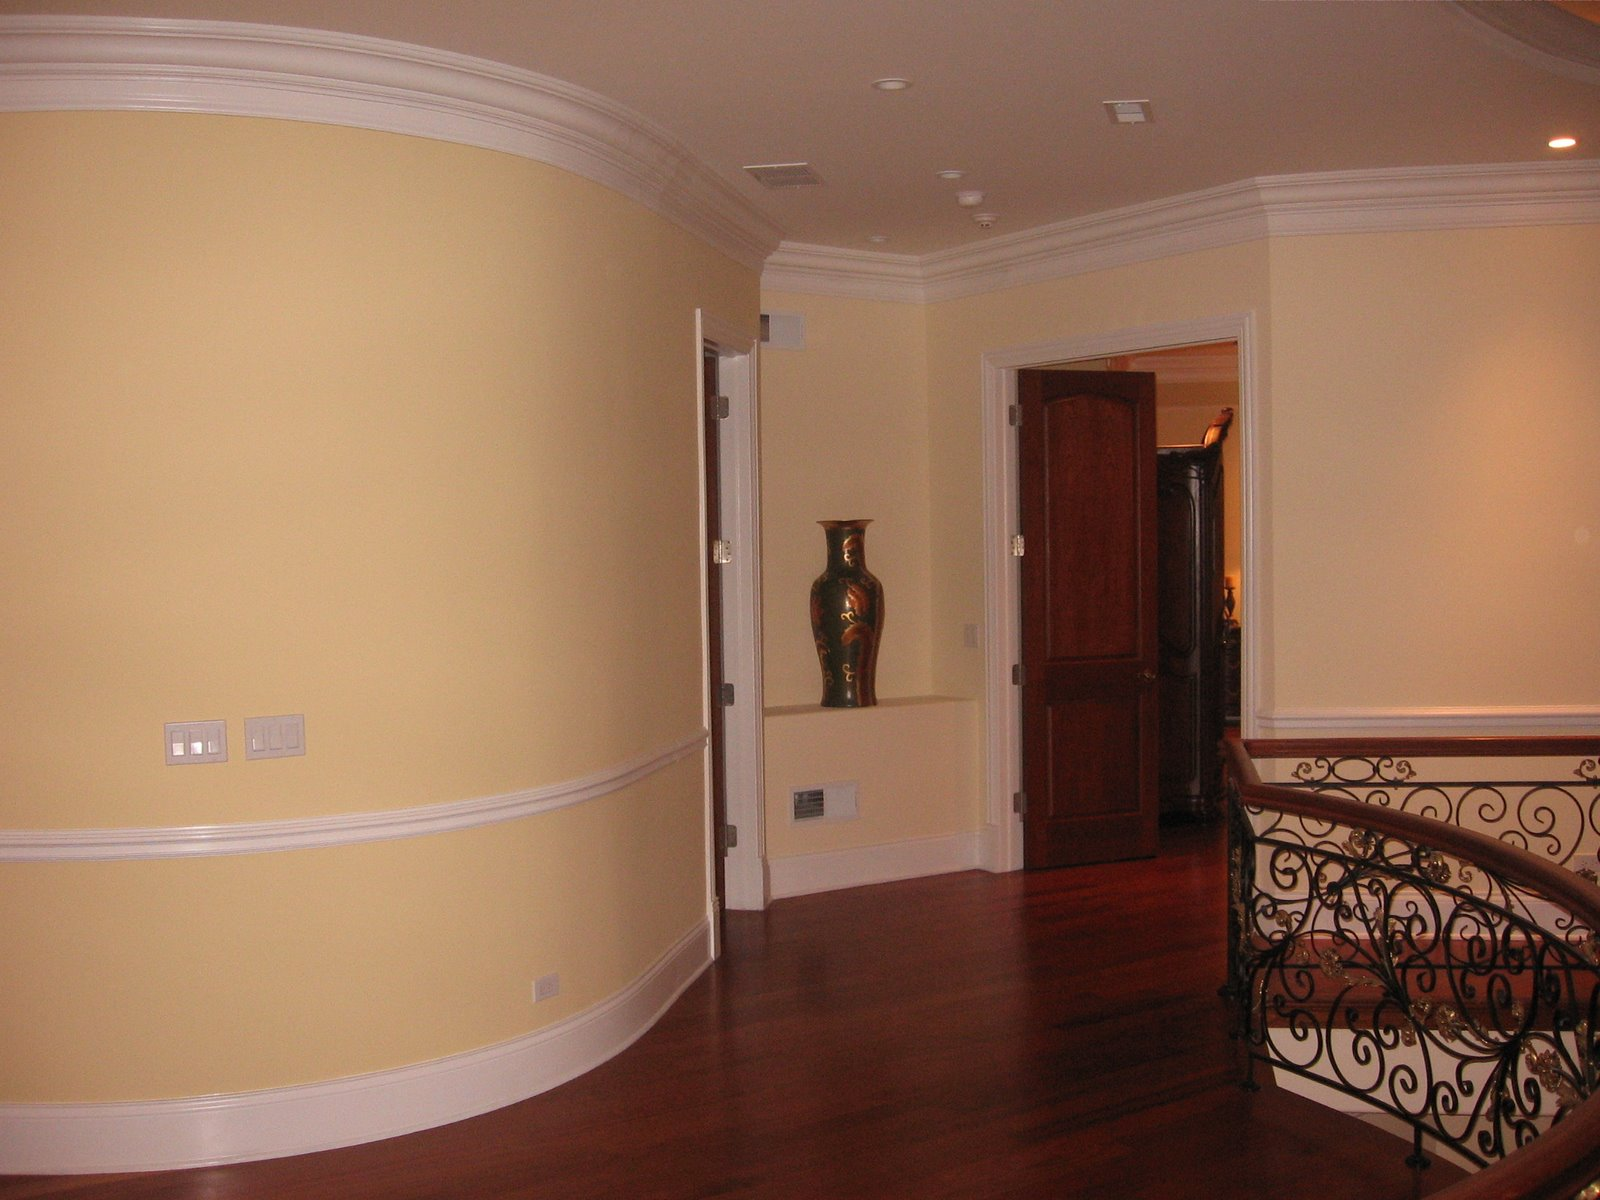 Interior painting contractors portland or vancouver wa - Ideas on home interior paint ...